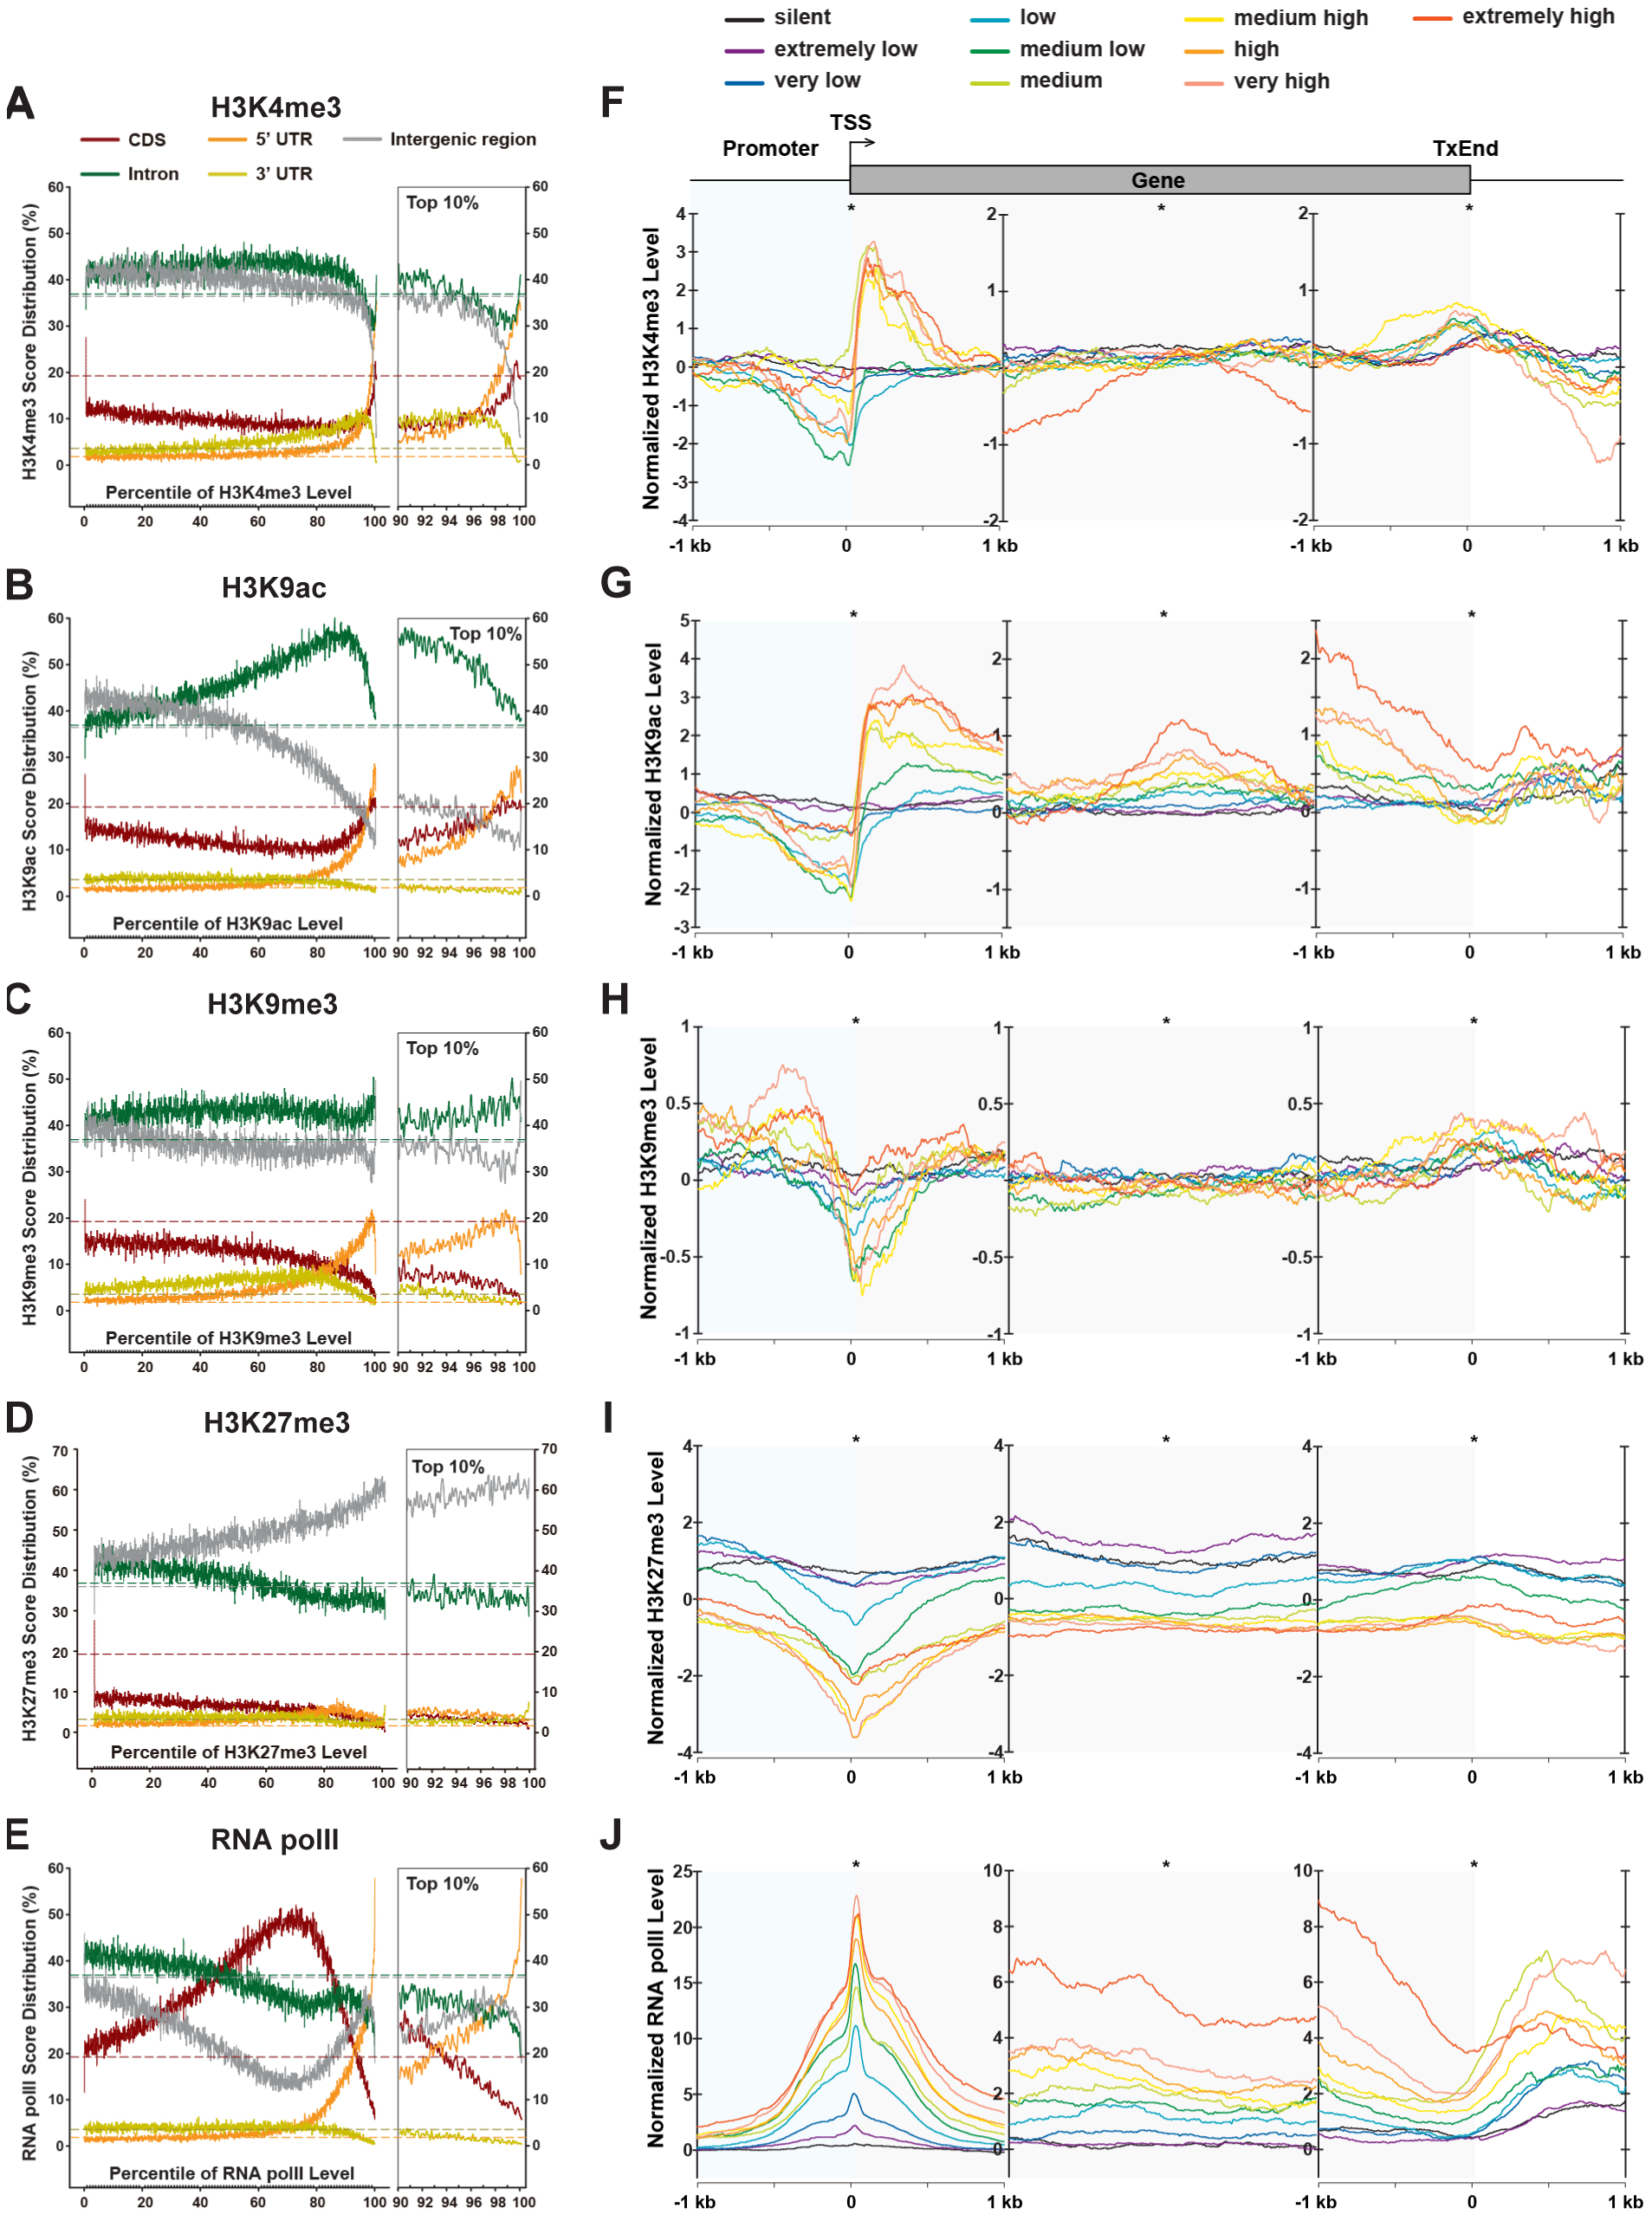 Distributions of chromatin modifications across the genome and genes.